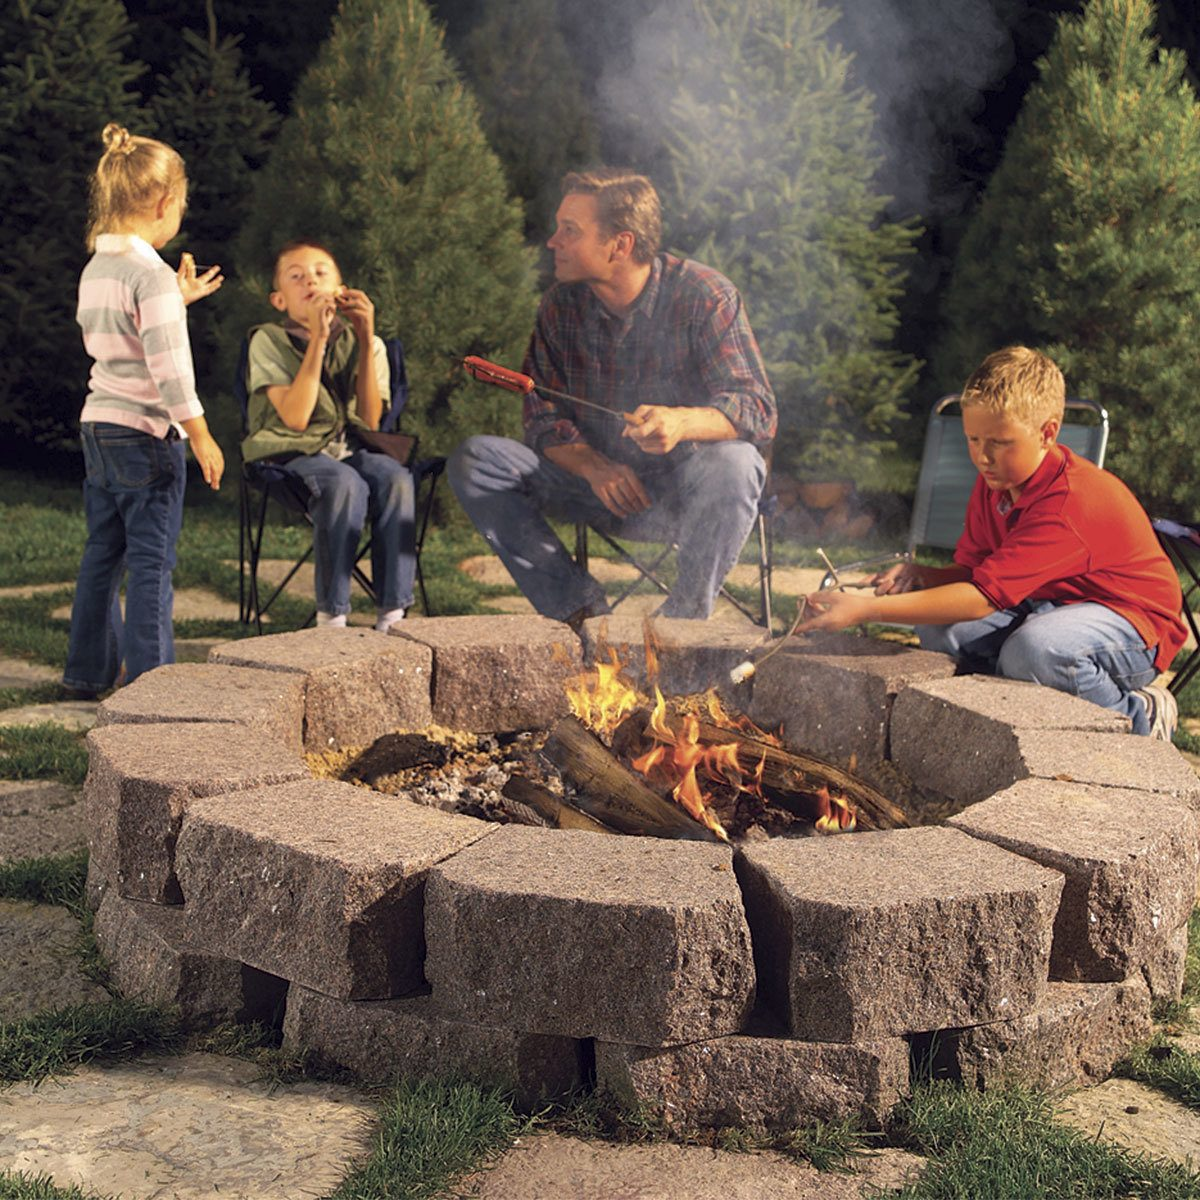 DIY fire pit fire ring backyard ideas Family roasting marshmellows around DIY firepit